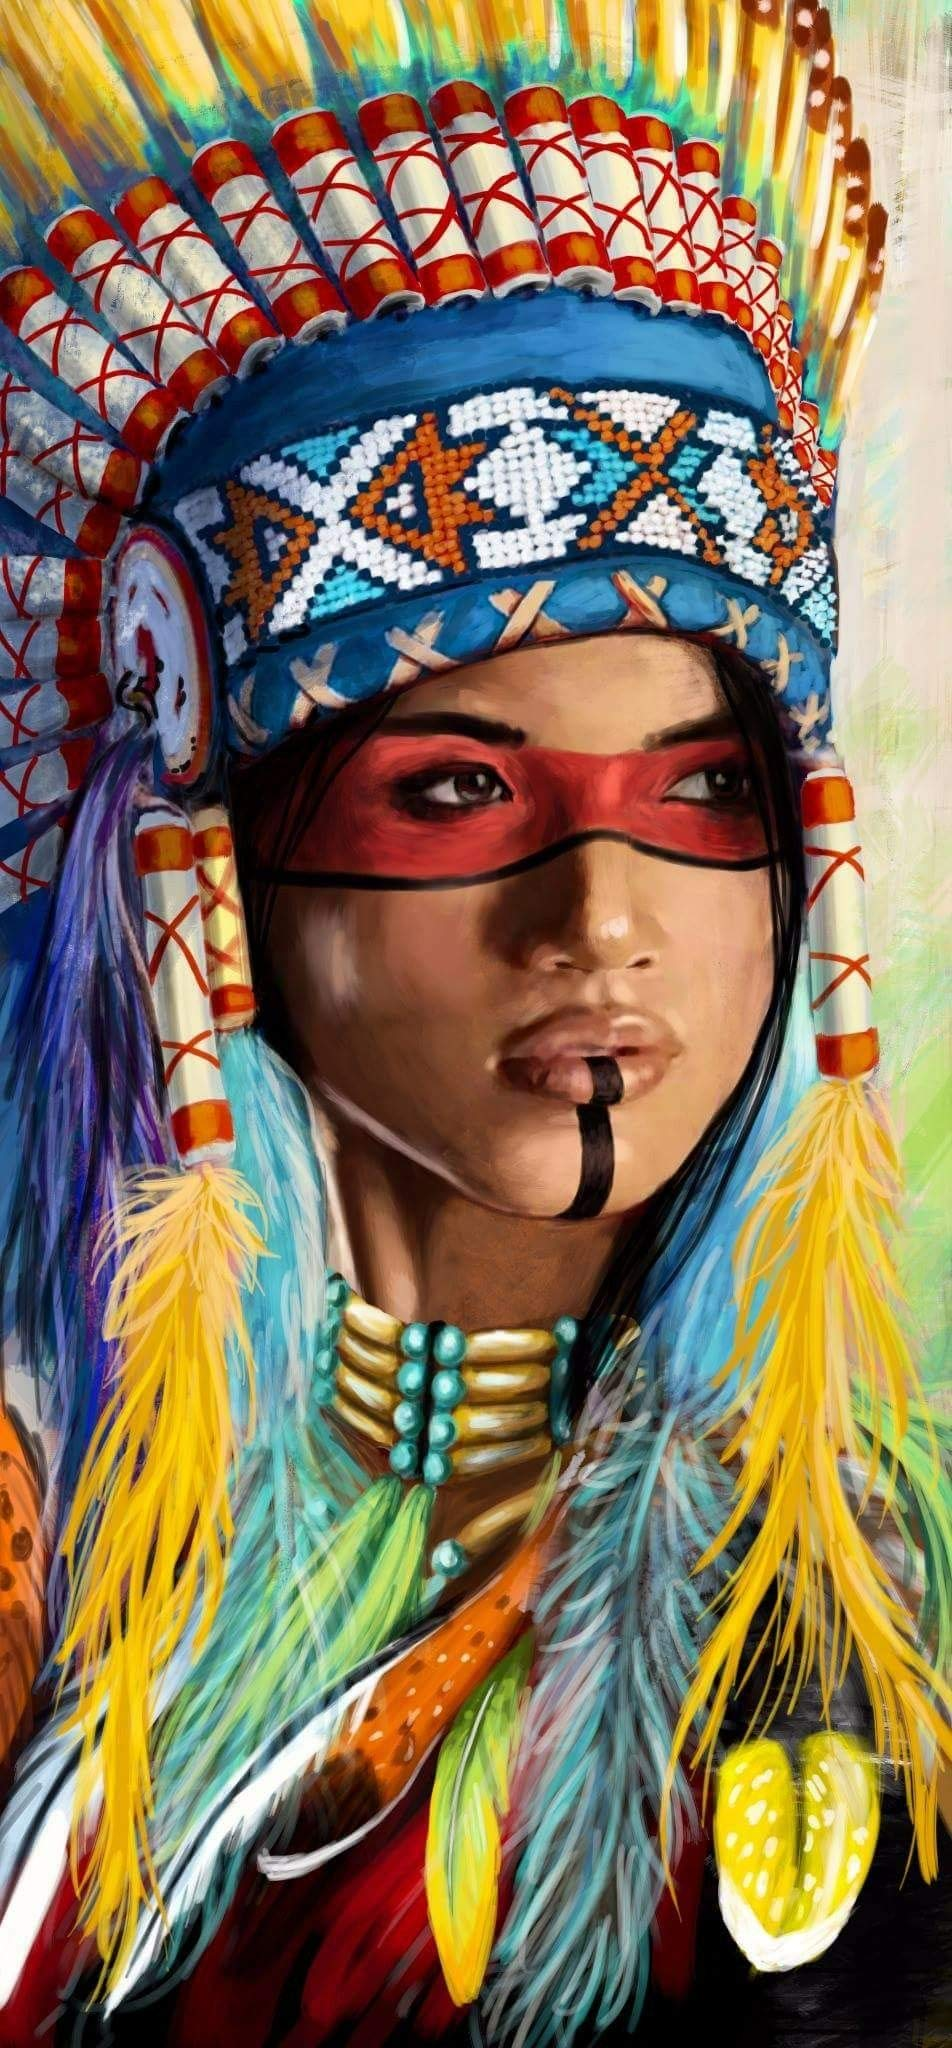 KOTART Diamond Painting Kits for Adults 16x31.5'' Full Drill Native American Indian Woman 2 - DIY Diamond Cross Stitch Patterns Dreamcatcher Feather Set with Tools, Accessories, Supplies – Adults